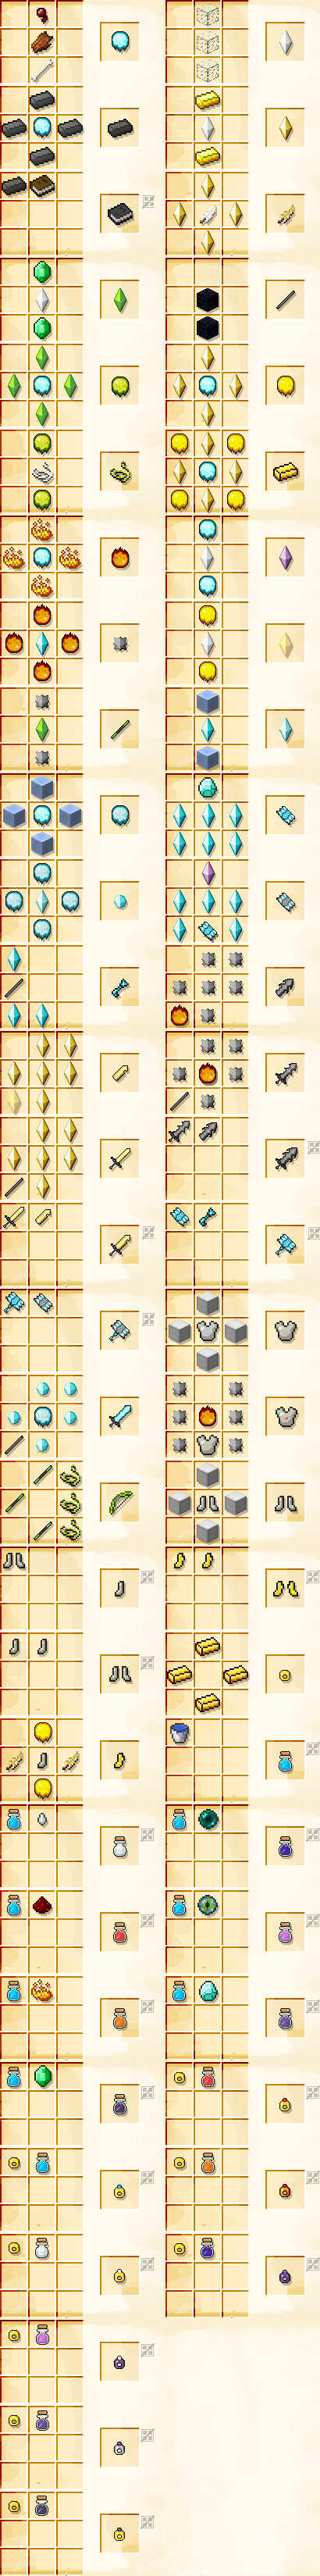 Gods-Weapons-Mod-7.png